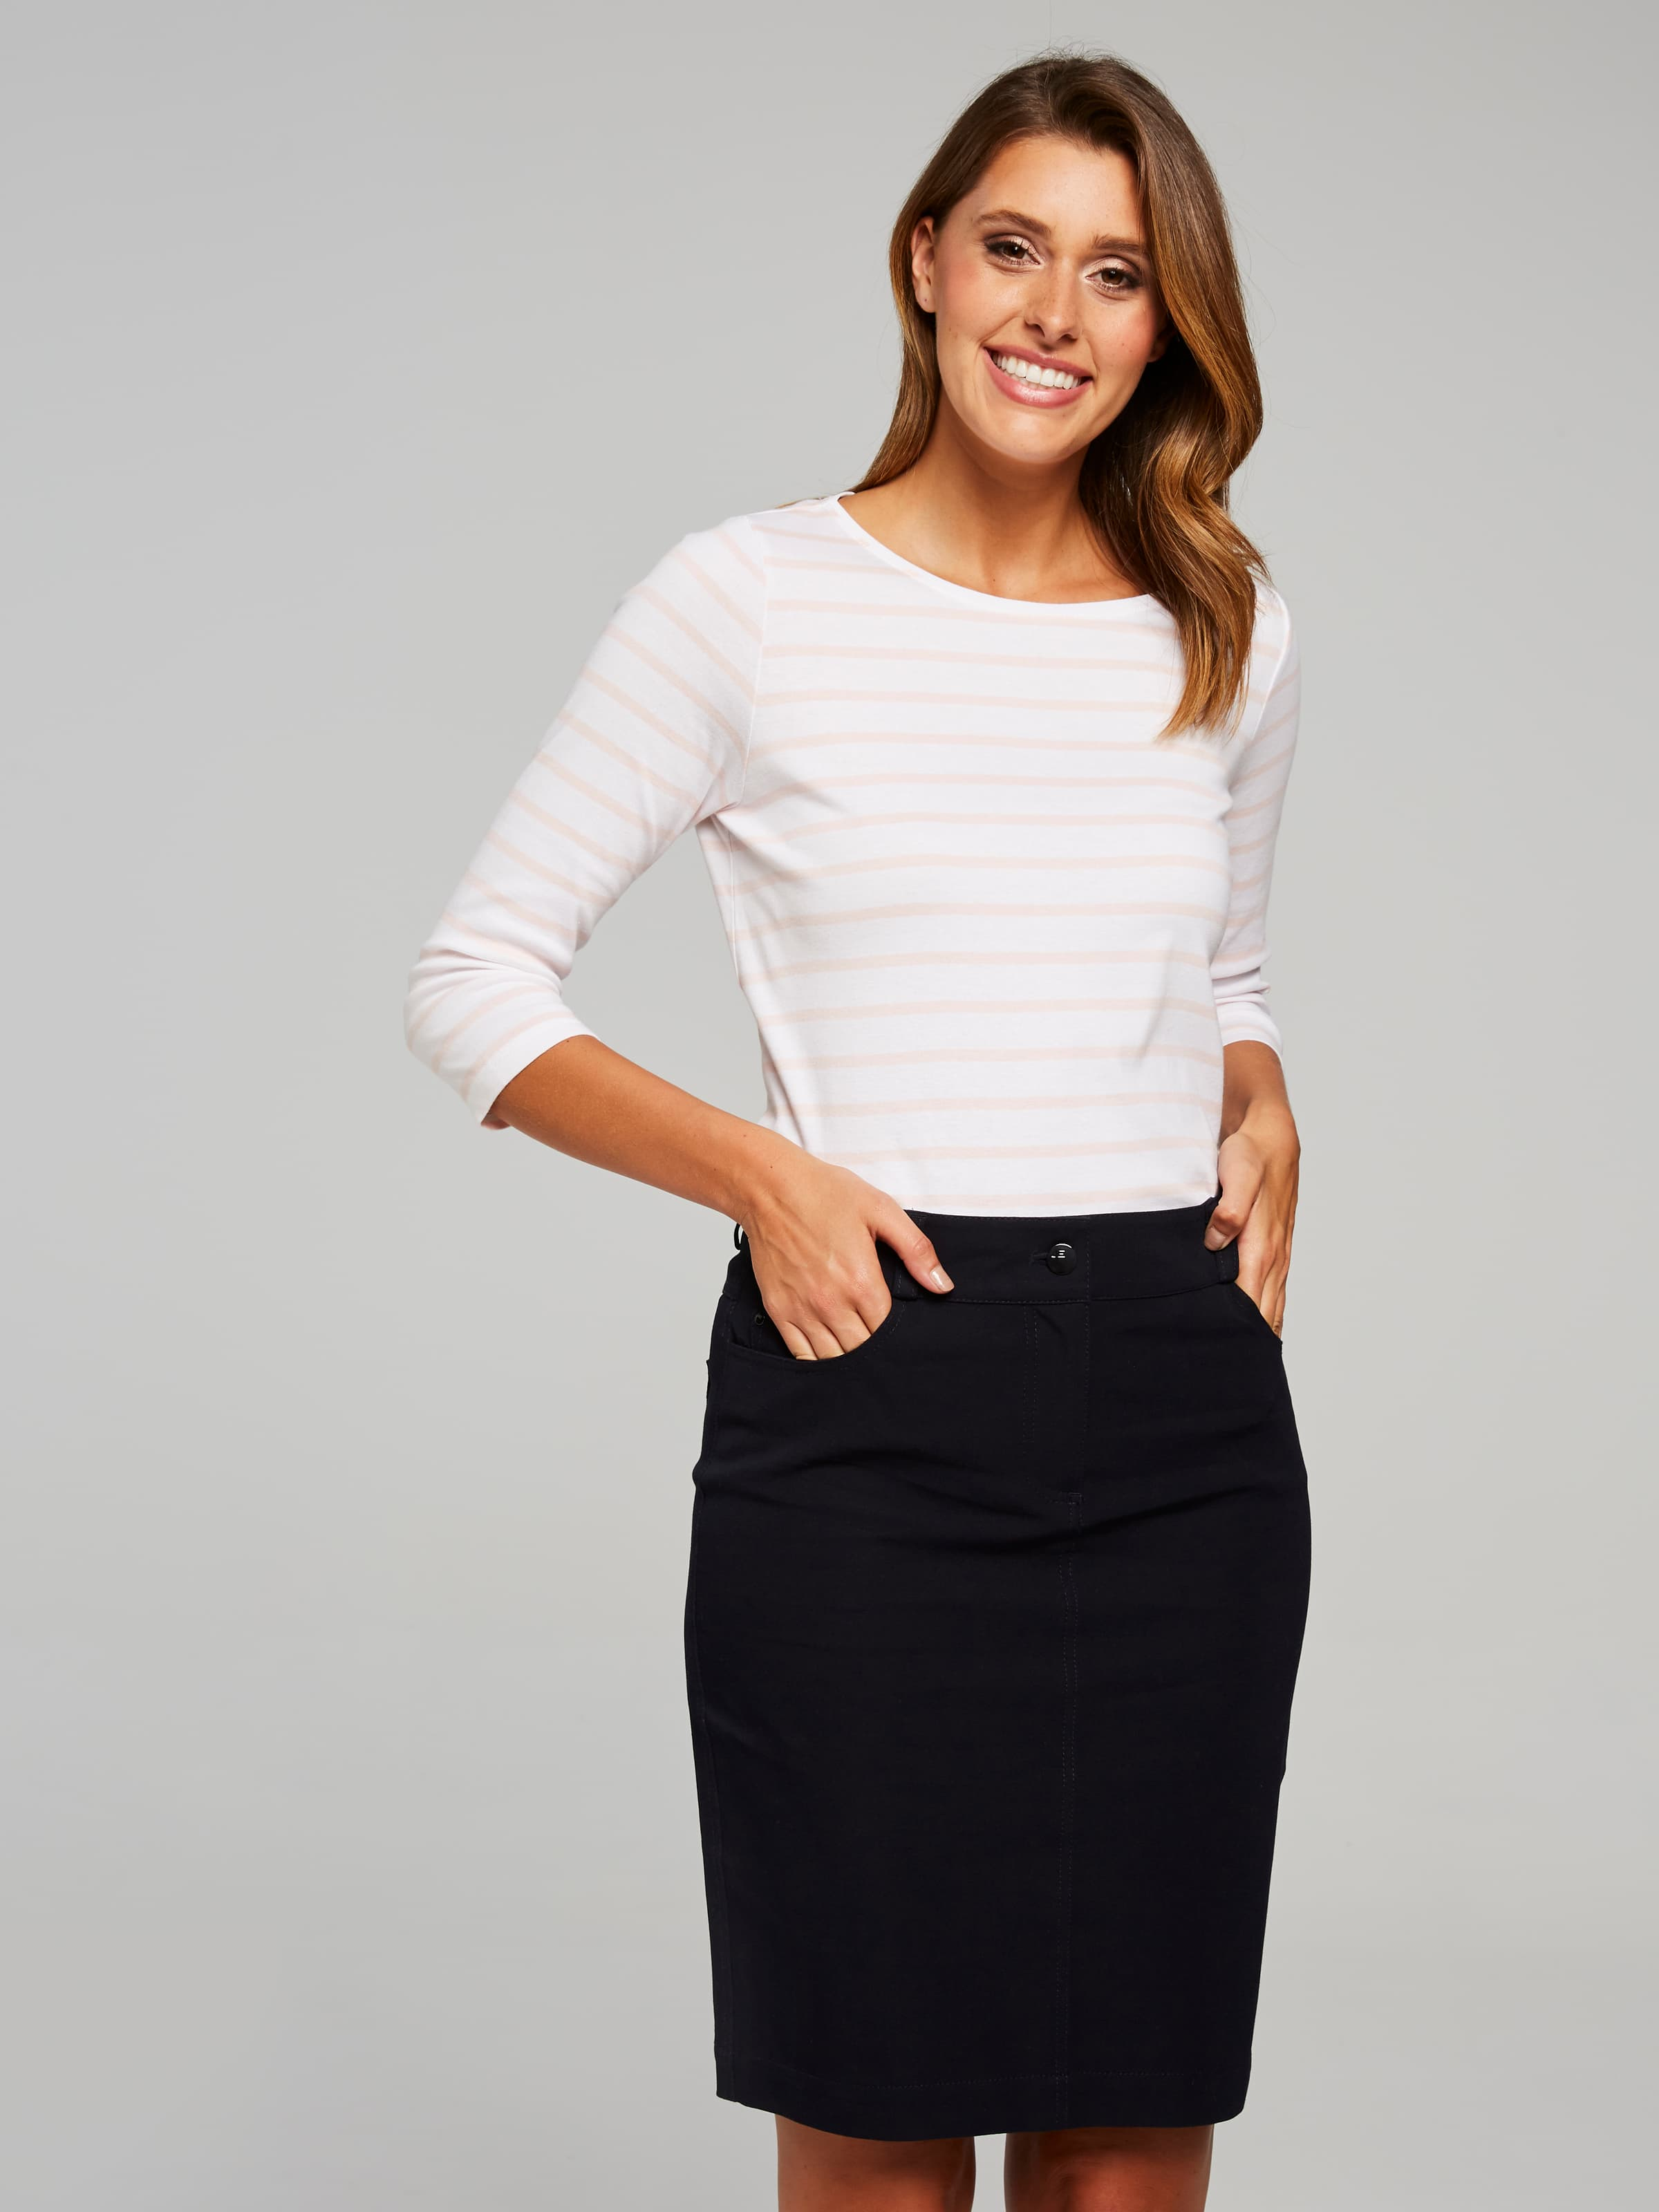 The Highly Anticipated Lily 5 Pocket Skirt In This Modern Stretch Jean Fabrication, Will Prove To Be A Favourite In Your Casual Office Or Weekend Look. Style Back With A Casual Tee Or Blouse, A Cute Pair Of Ballerina Flats And You're Good To Go.(Italian Navy, 18)